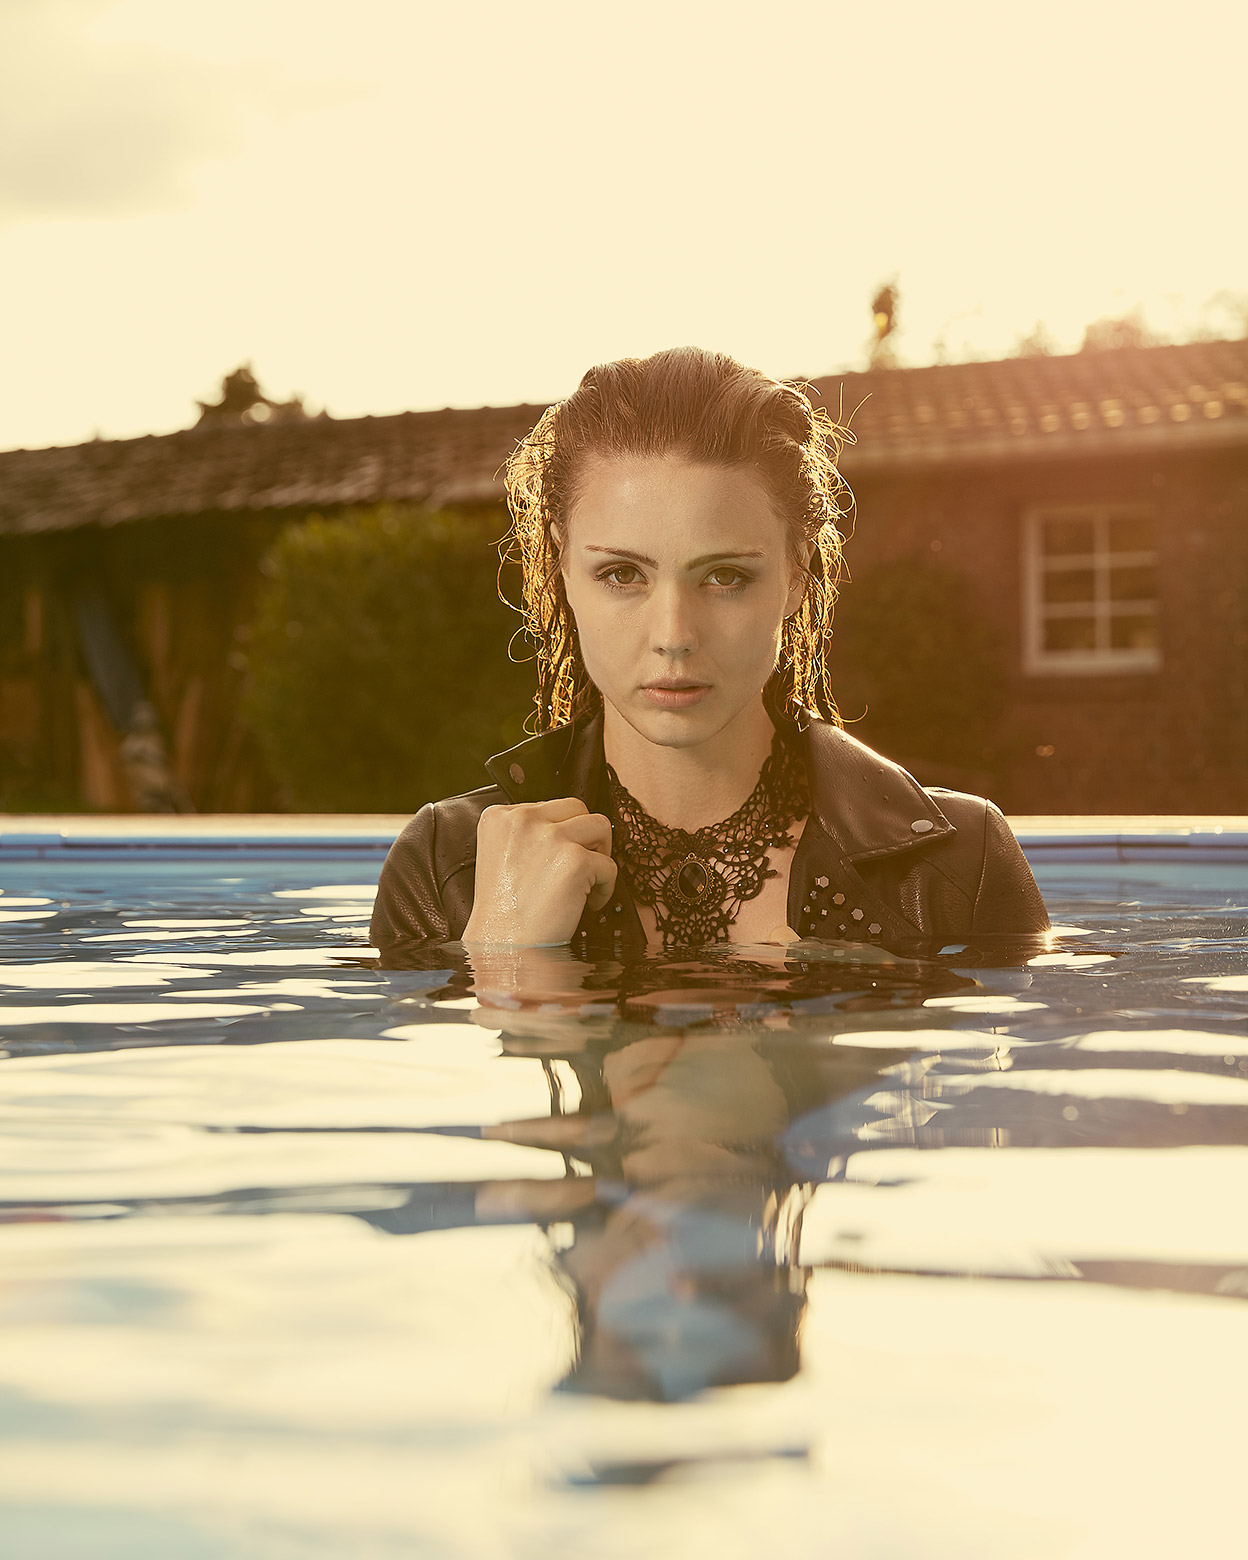 Fashion and Pool - Swim with Leatherjacket by Guess, by Gunnar Wöbse